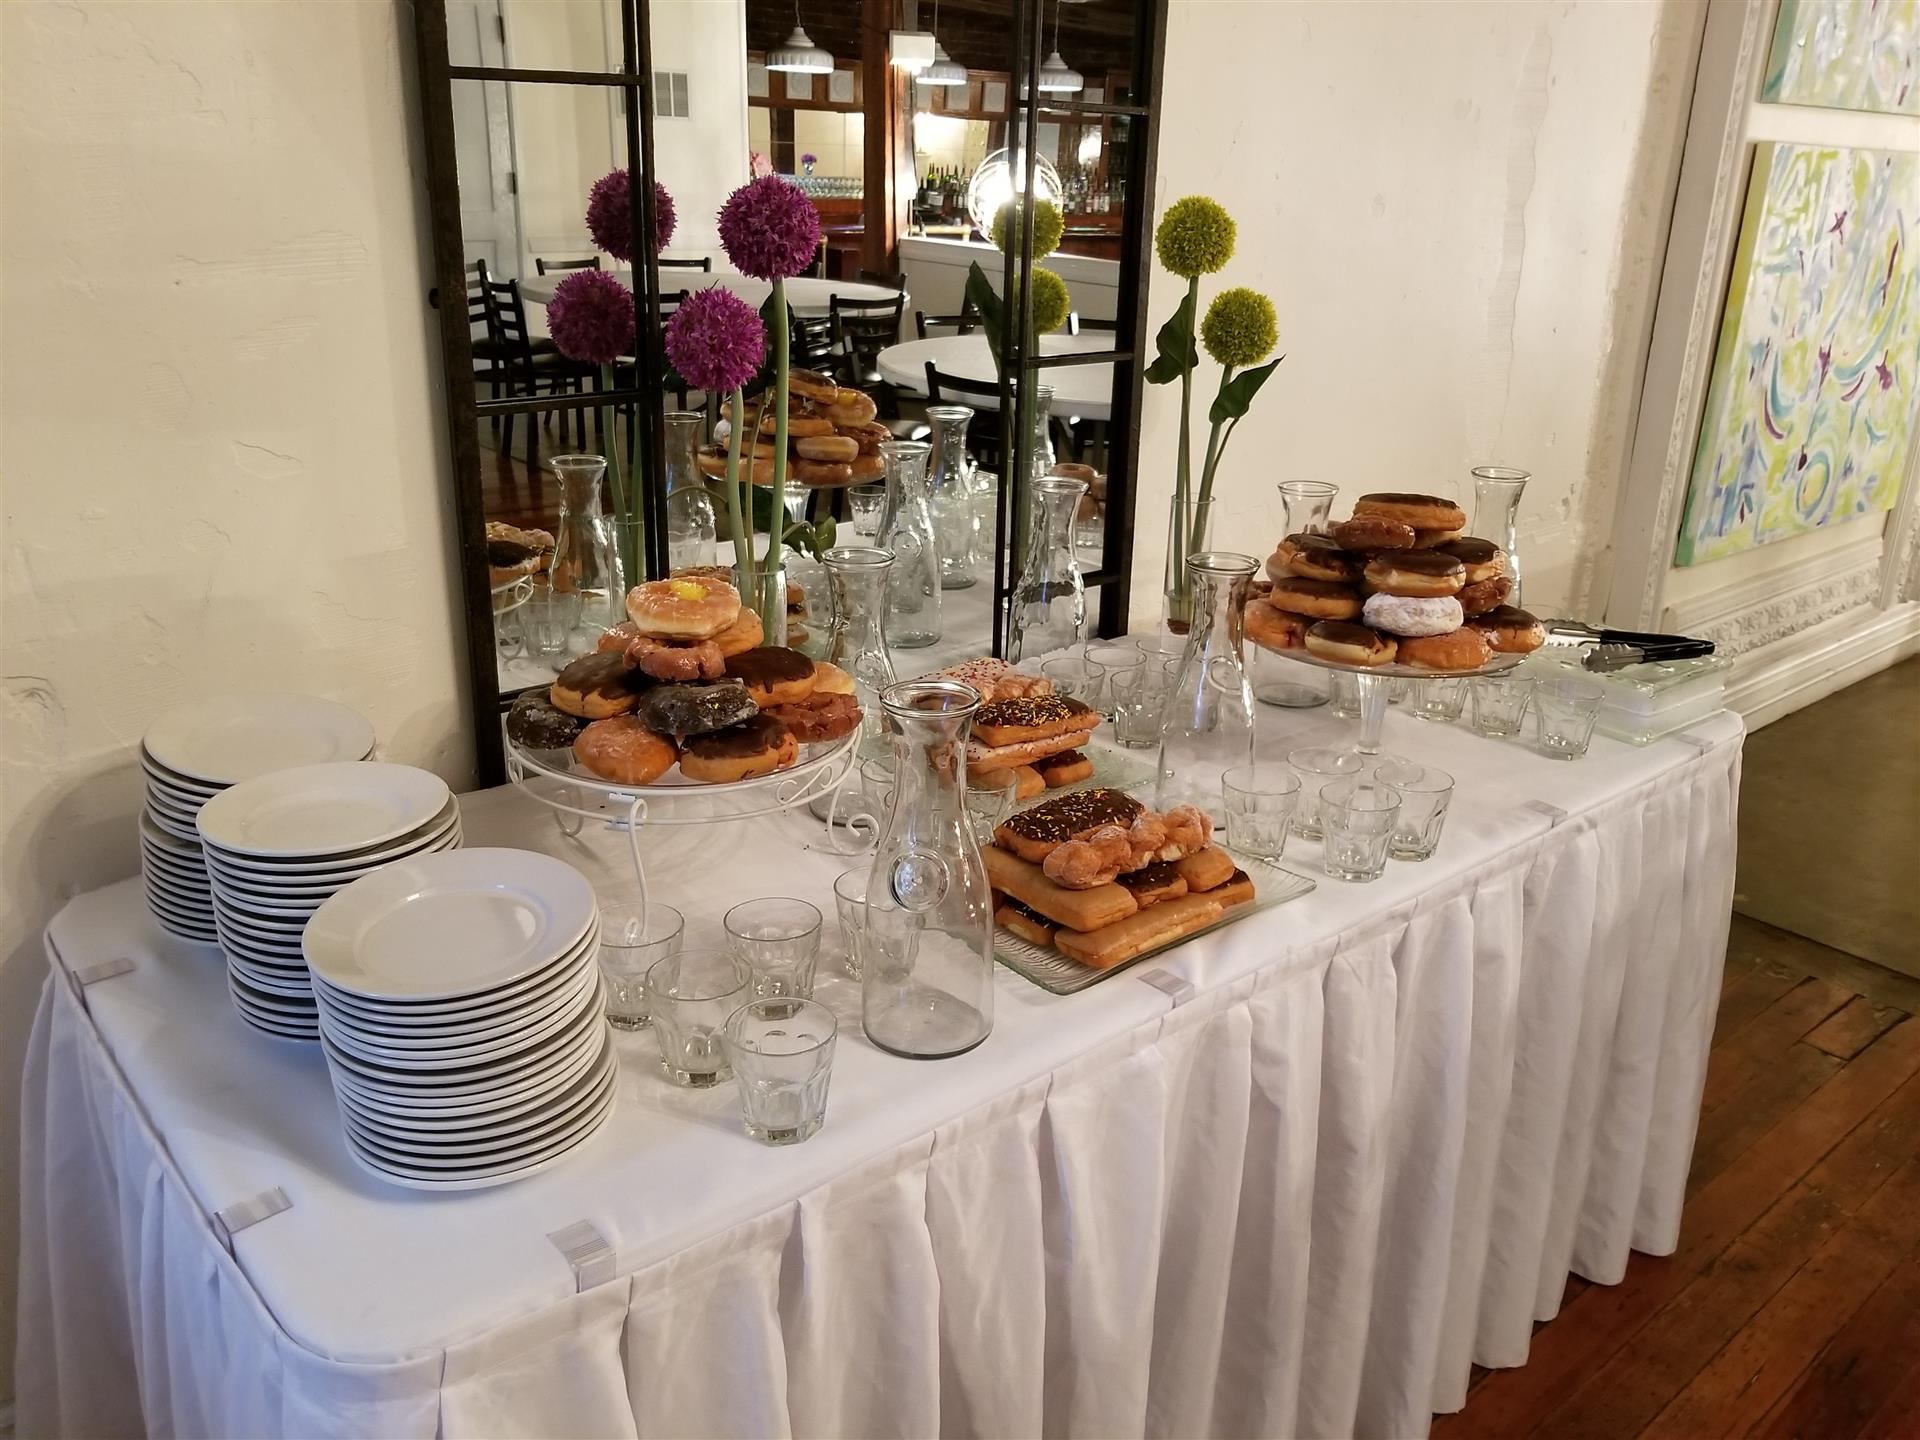 table set up with plates to pick-up donuts and other desserts